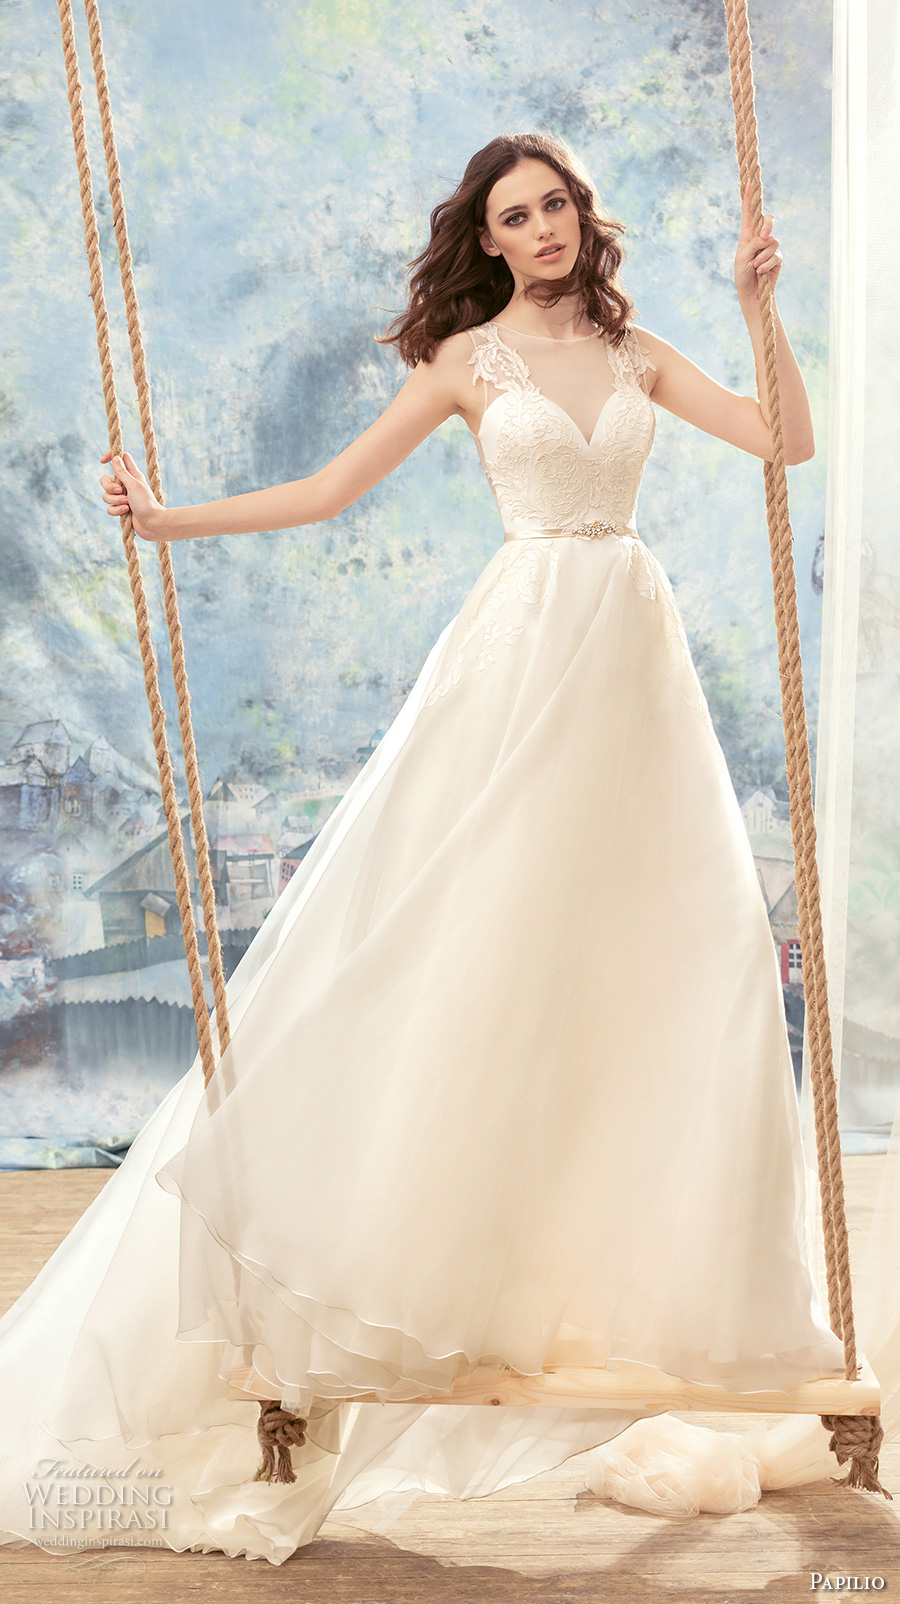 papilio 2017 bridal sleeveless illusion jewel deep sweetheart neckline heavily embellished bodice romantic a  line wedding dress covered lace back chapel train (gove) mv